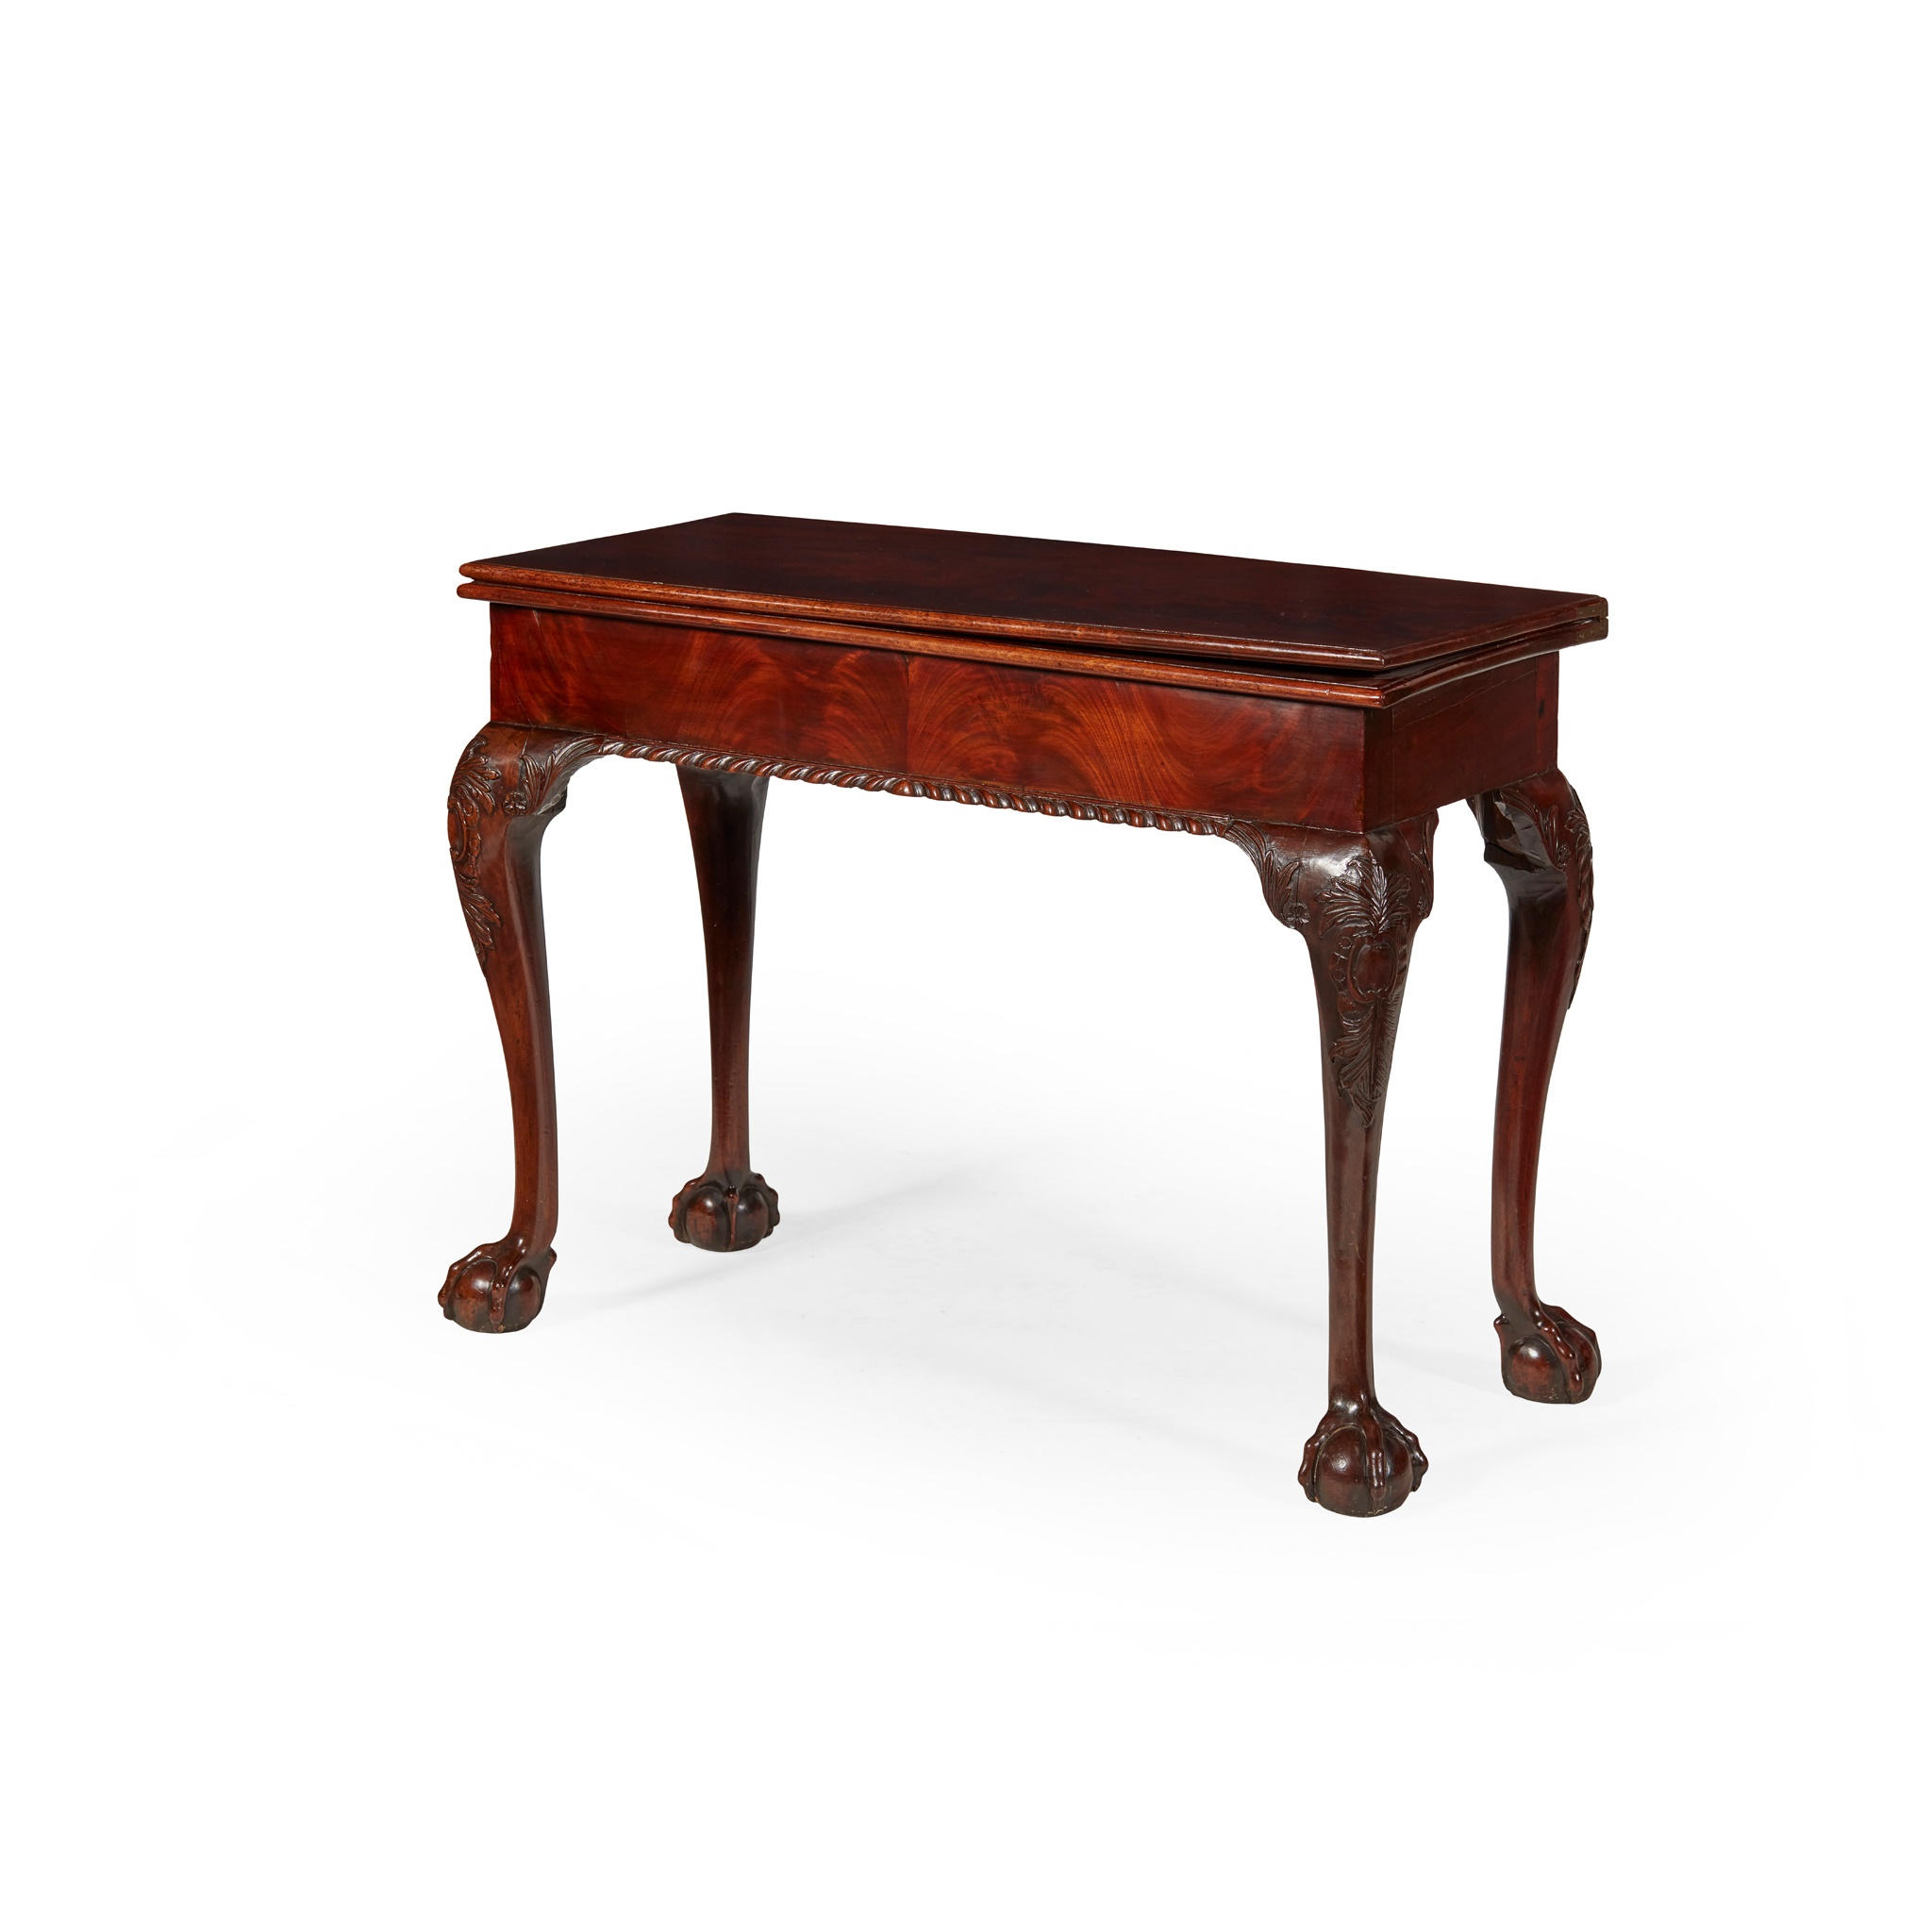 EARLY GEORGE III MAHOGANY TEA TABLE MID 18TH CENTURY